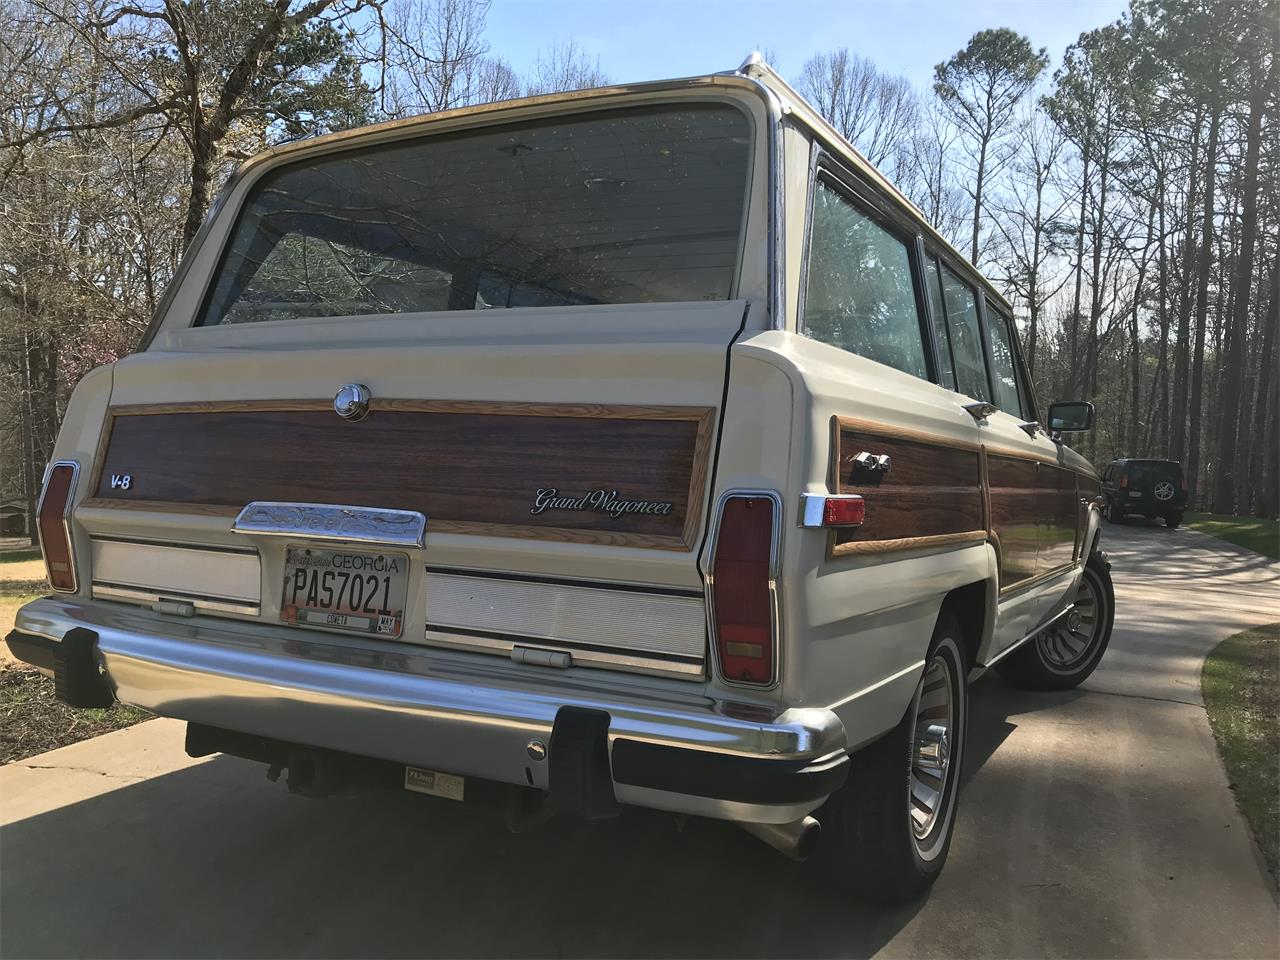 1987 Jeep Grand Wagoneer for sale in Sharpsburg, GA – photo 4